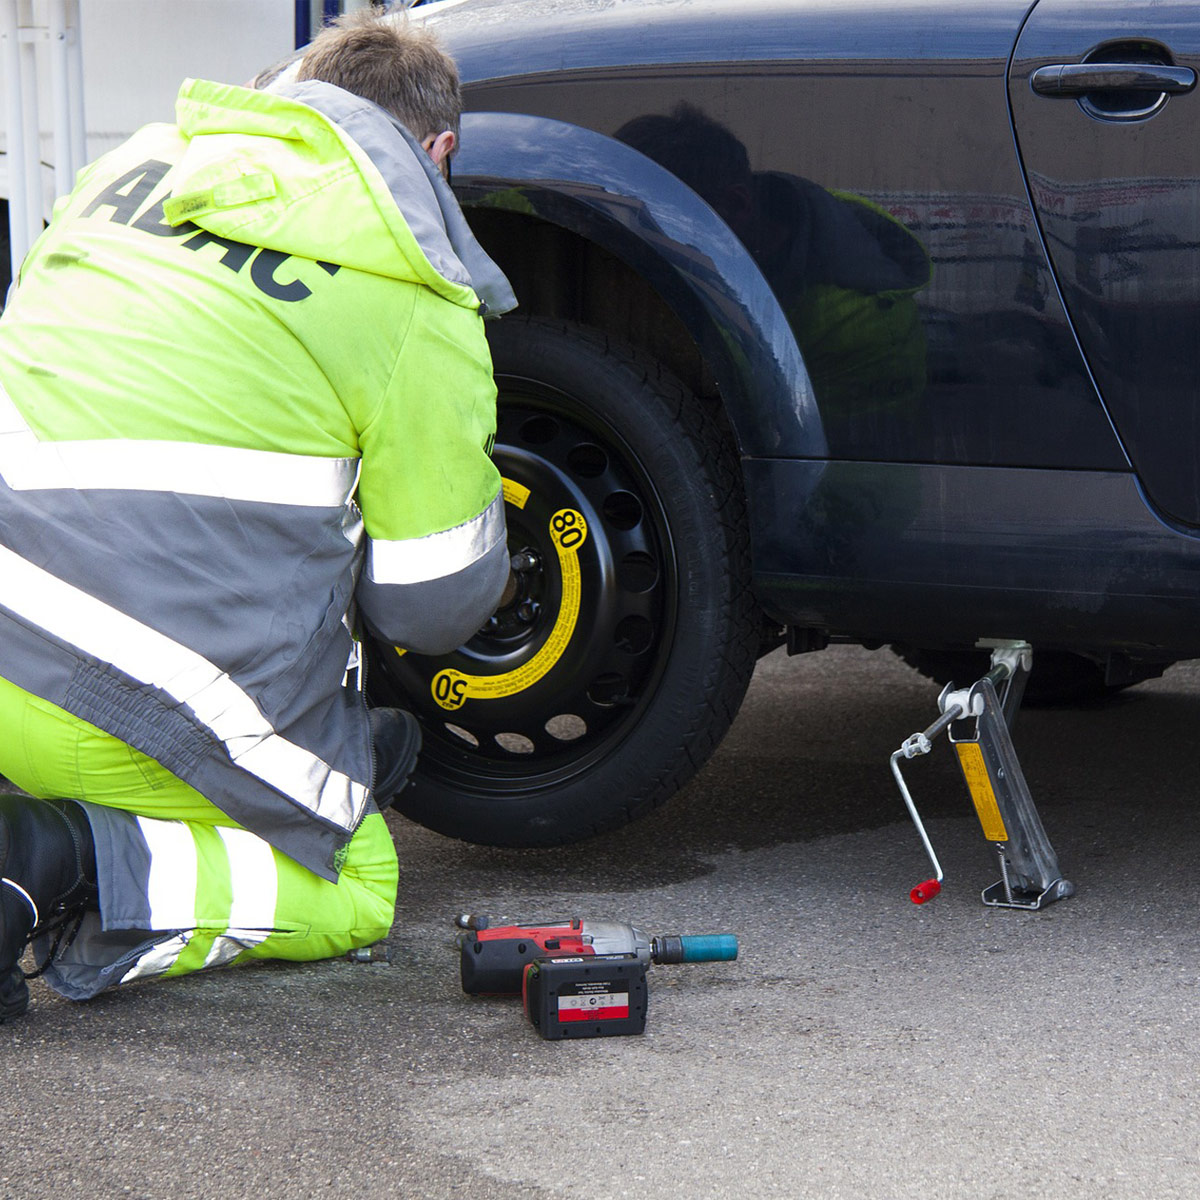 car on jack getting tire changed